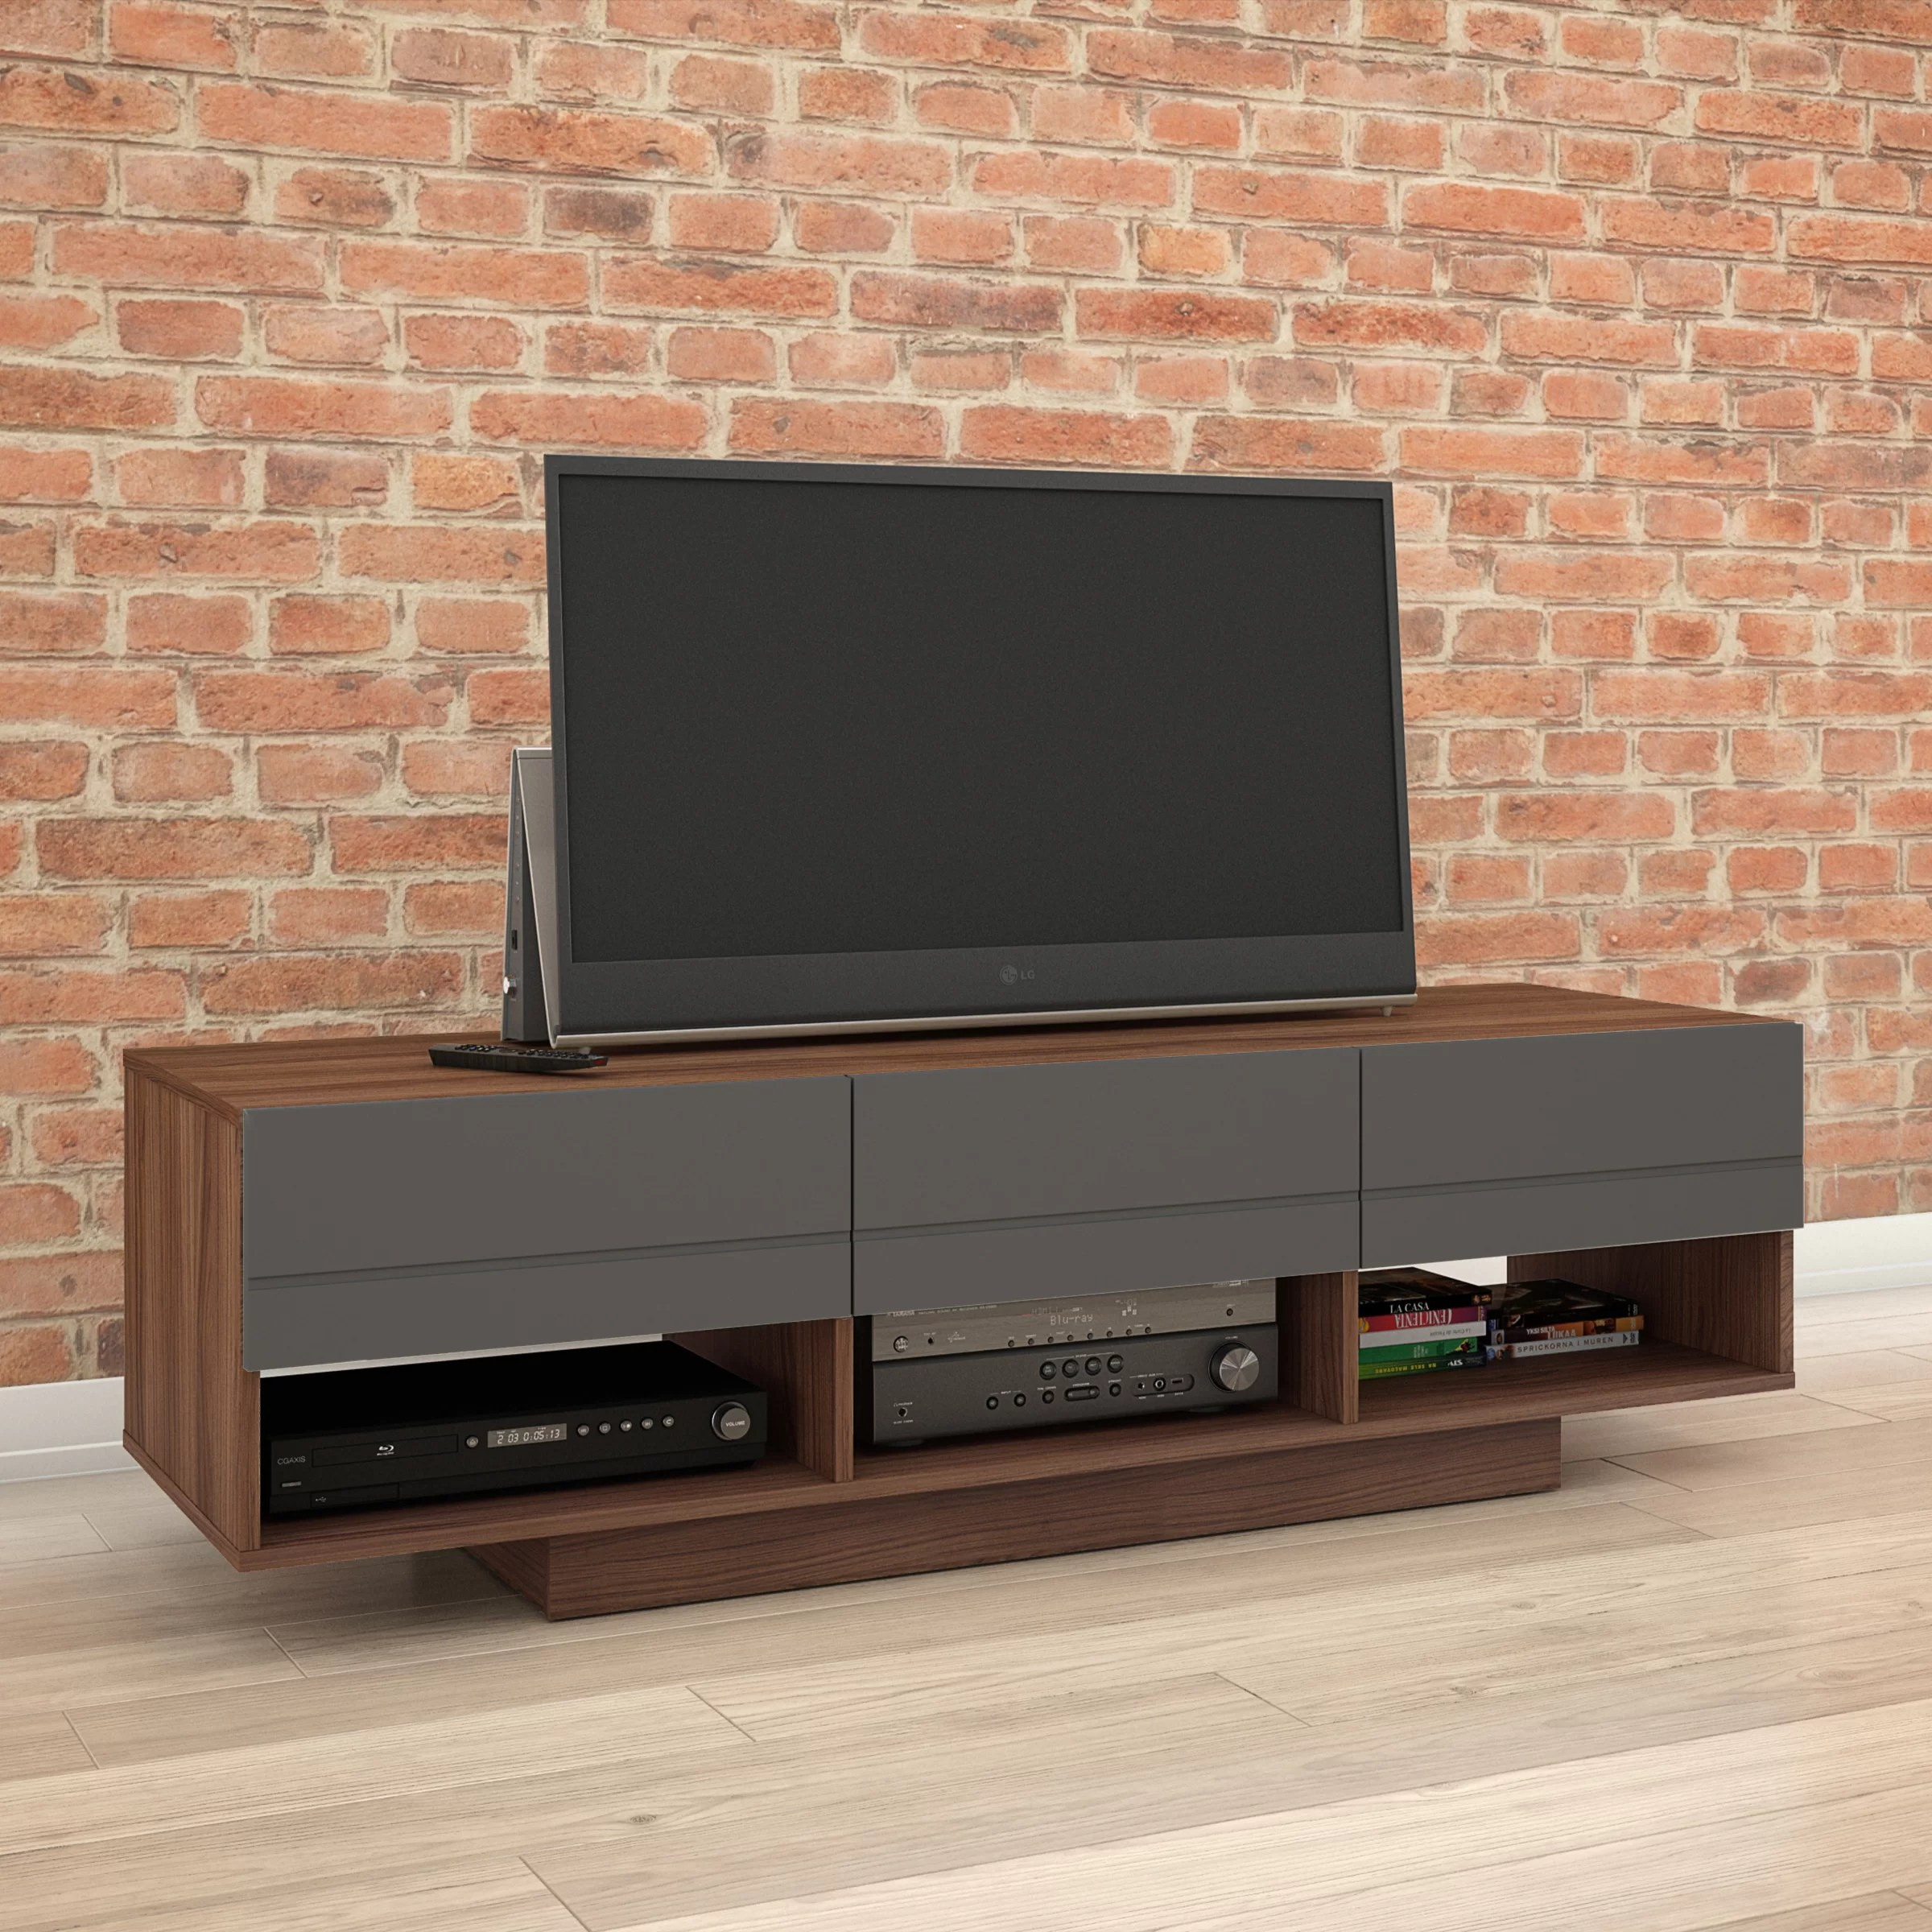 Meubles Brick Brossard Guilherme Tv Stand For Tvs Up To 60